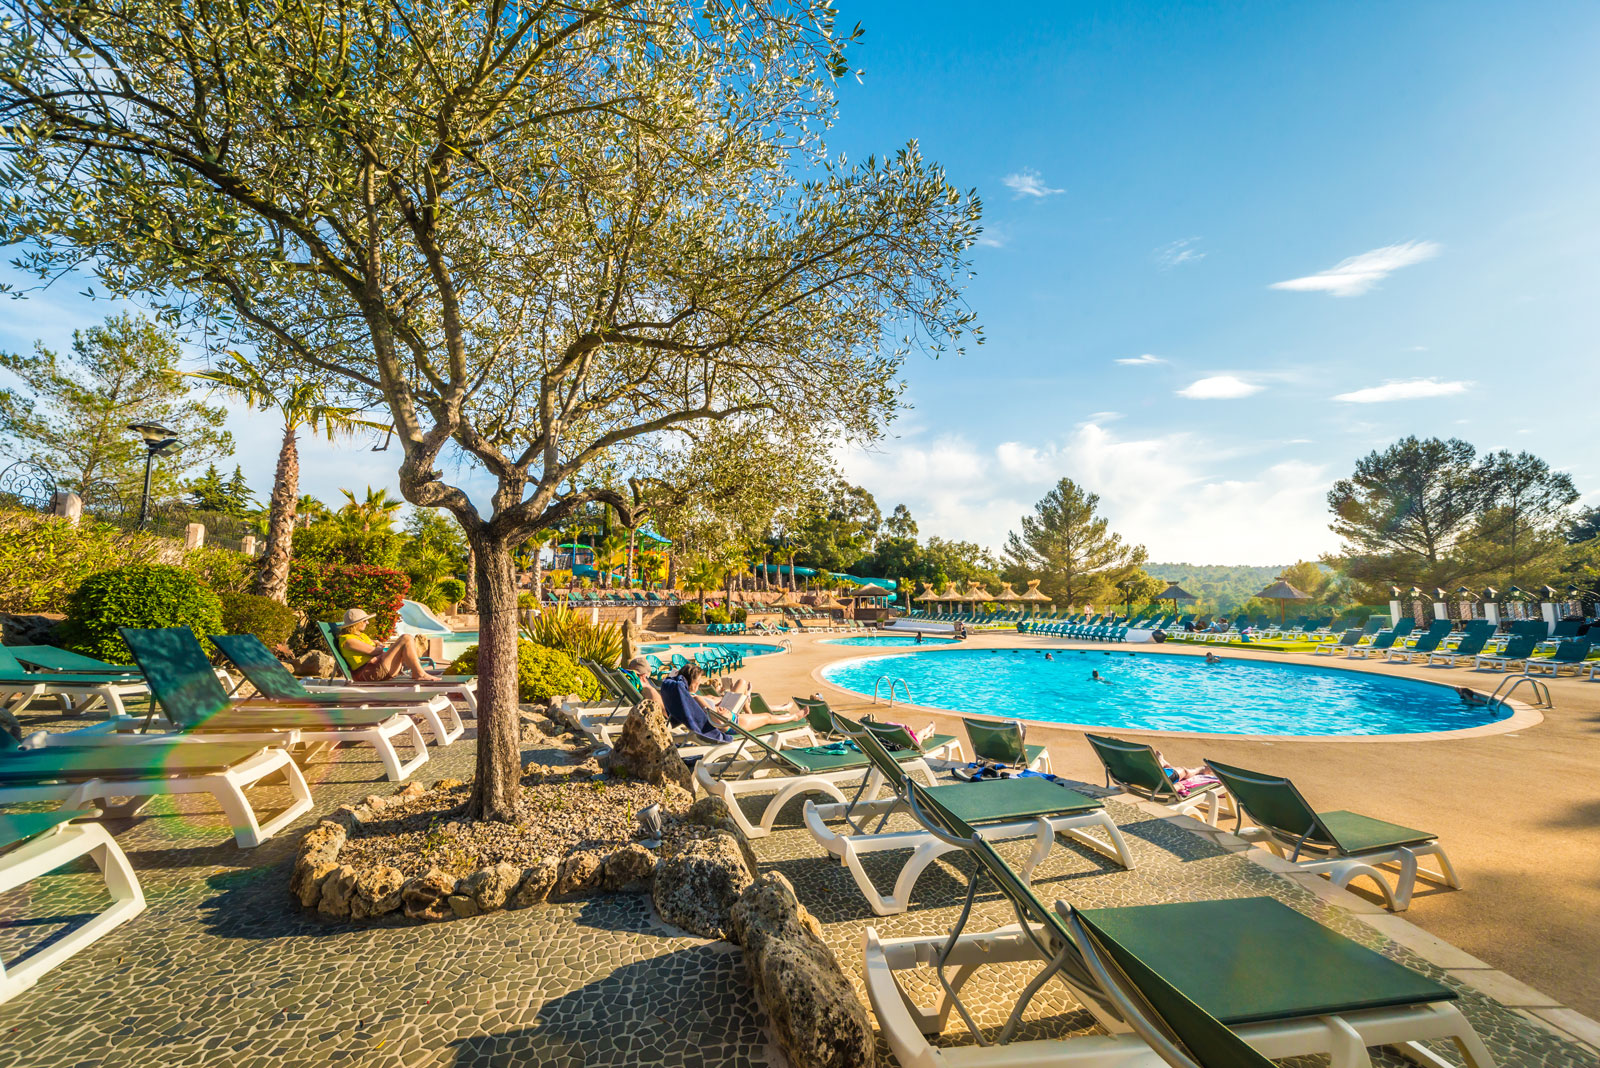 Esterel caravaning 5 star campsite on the french riviera